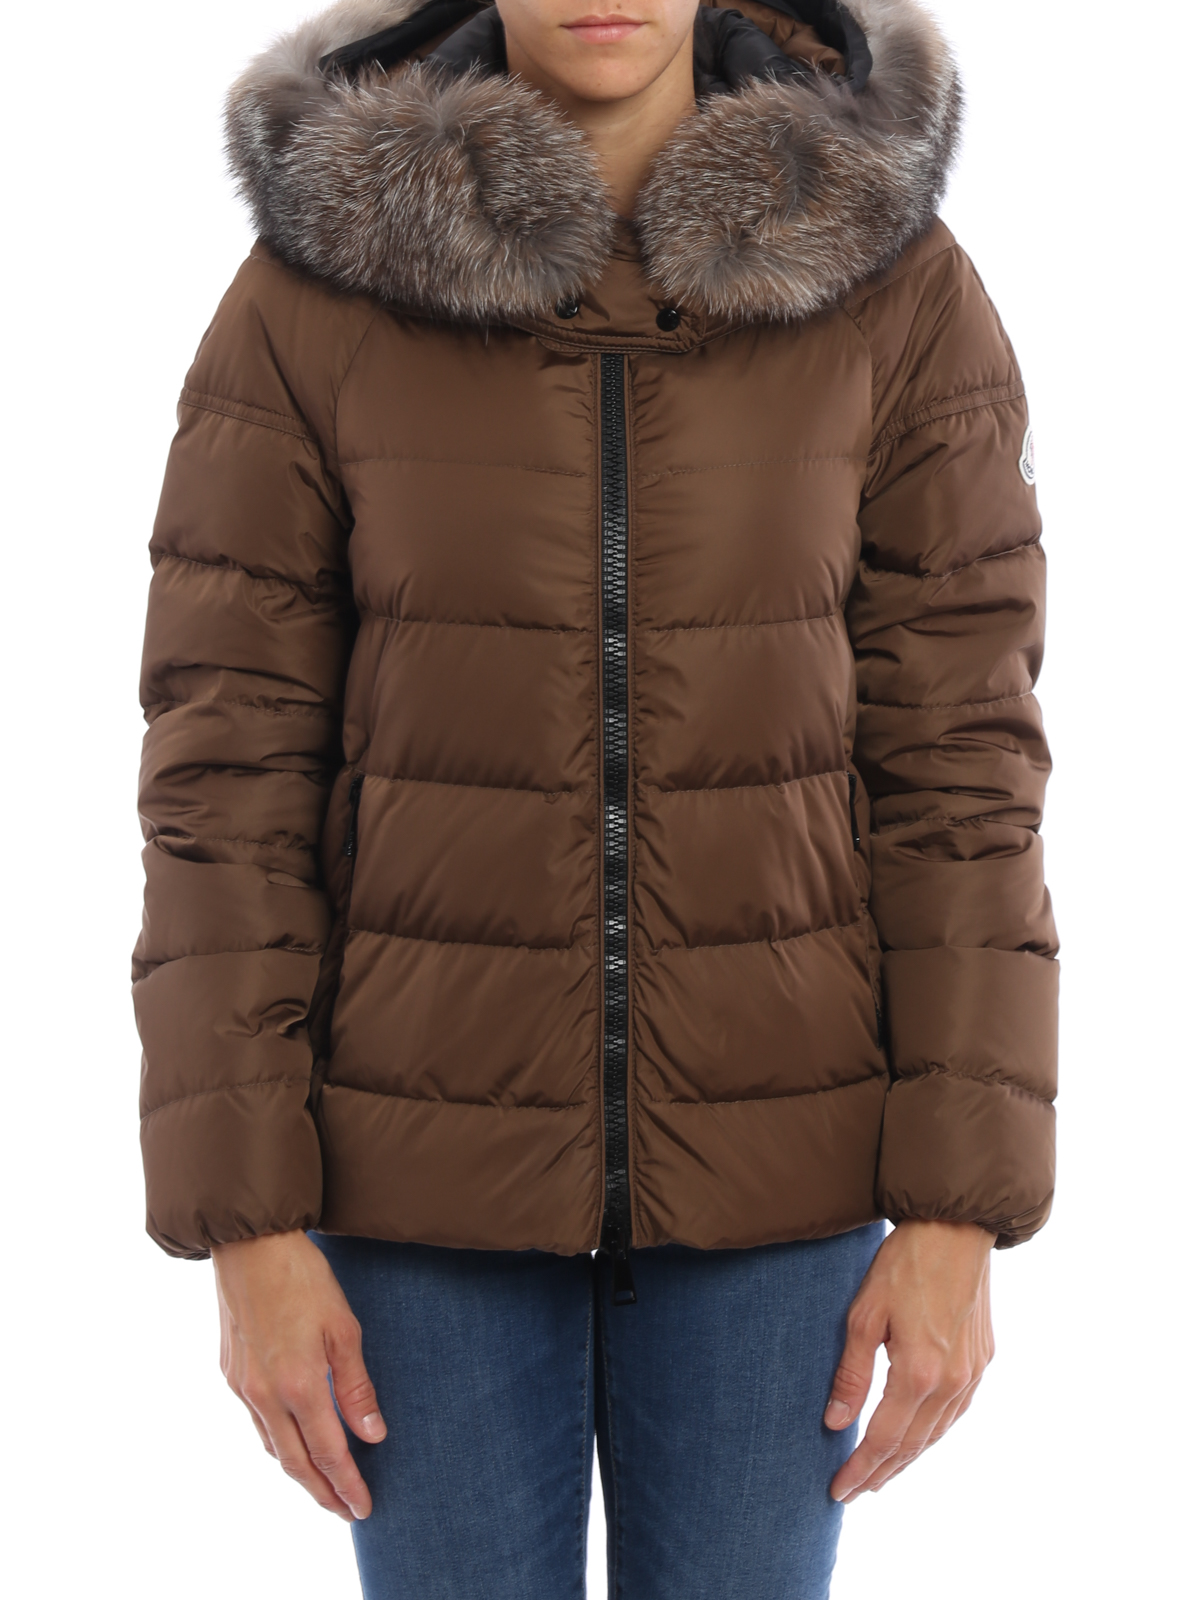 Chitalpa Fur Trimmed Down Jacket By Moncler Padded